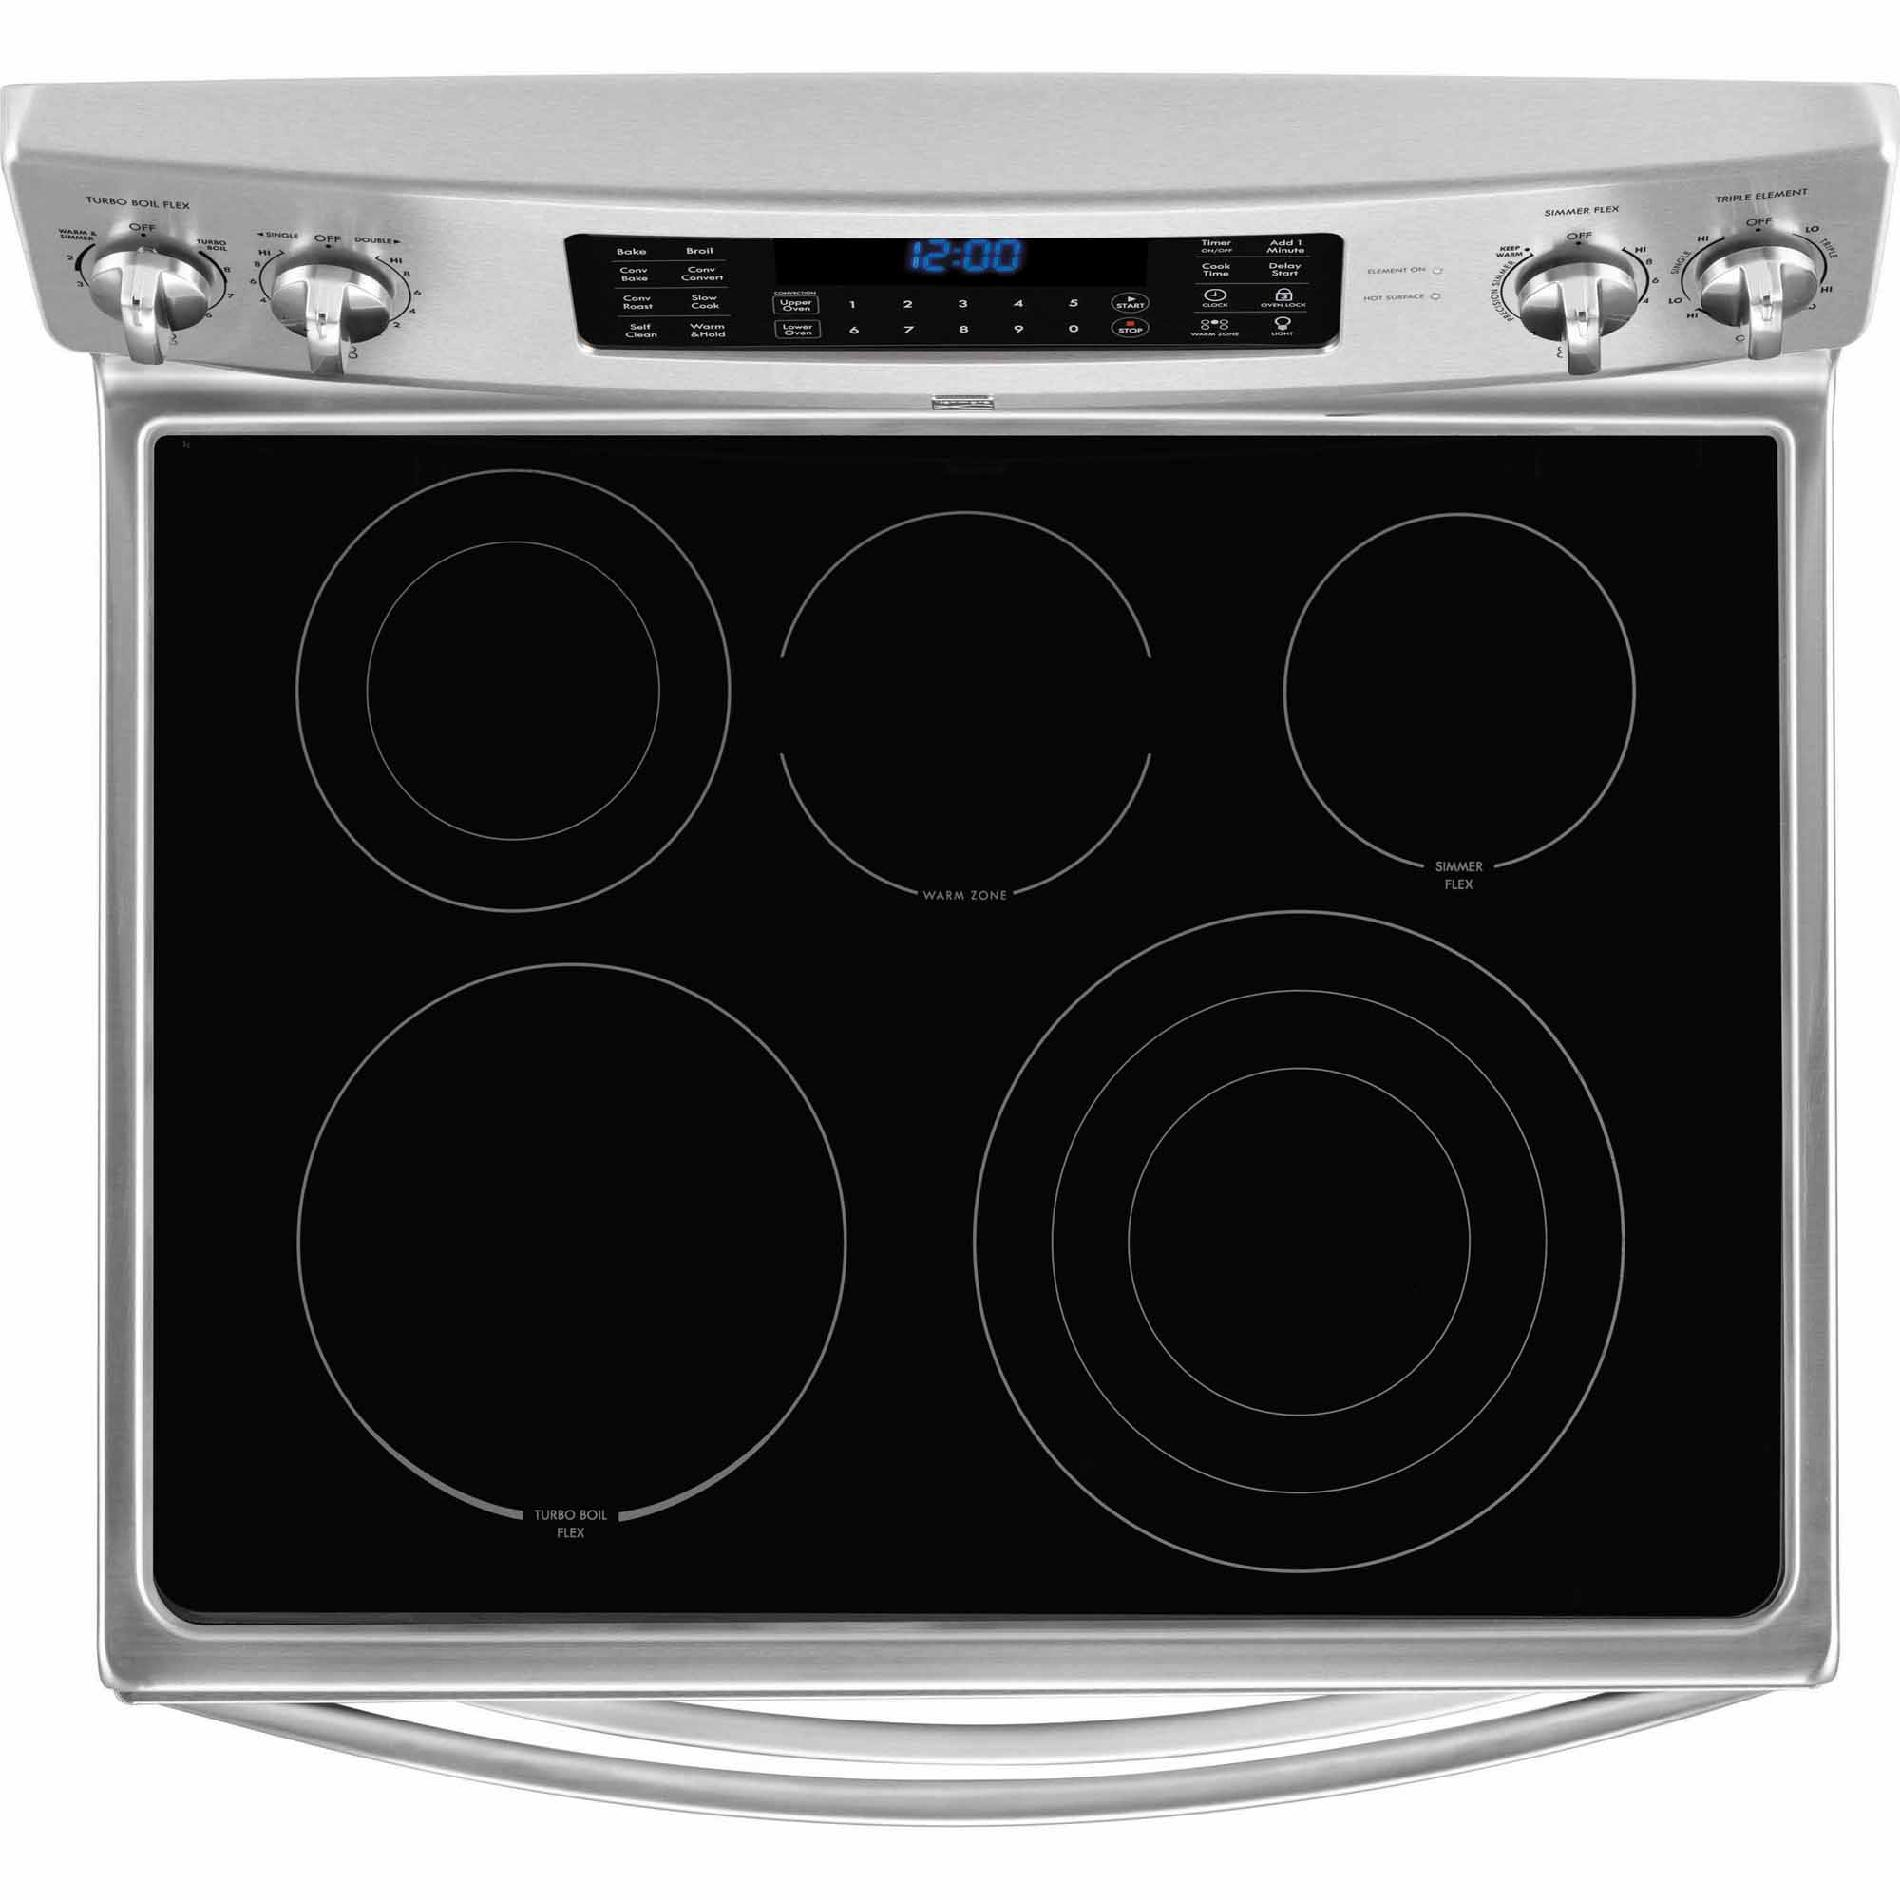 Kenmore Elite 97403 7.2 cu. ft. Double-Oven Electric Range - Stainless Steel